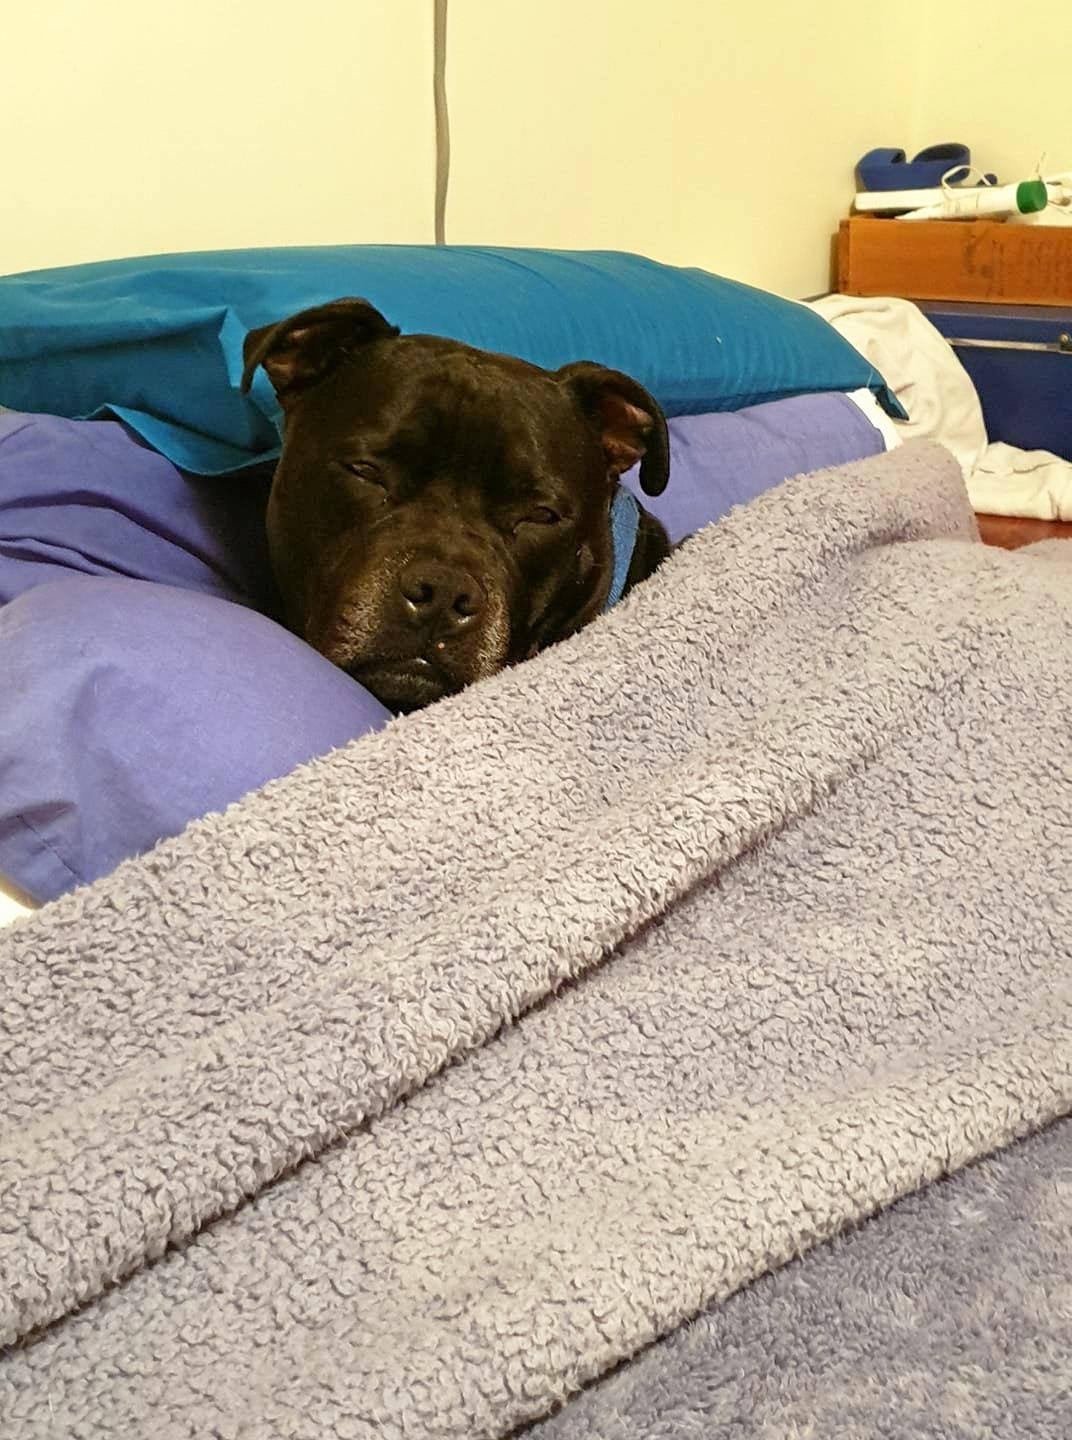 Blue snuggles under the blanket and of course head on pillow.